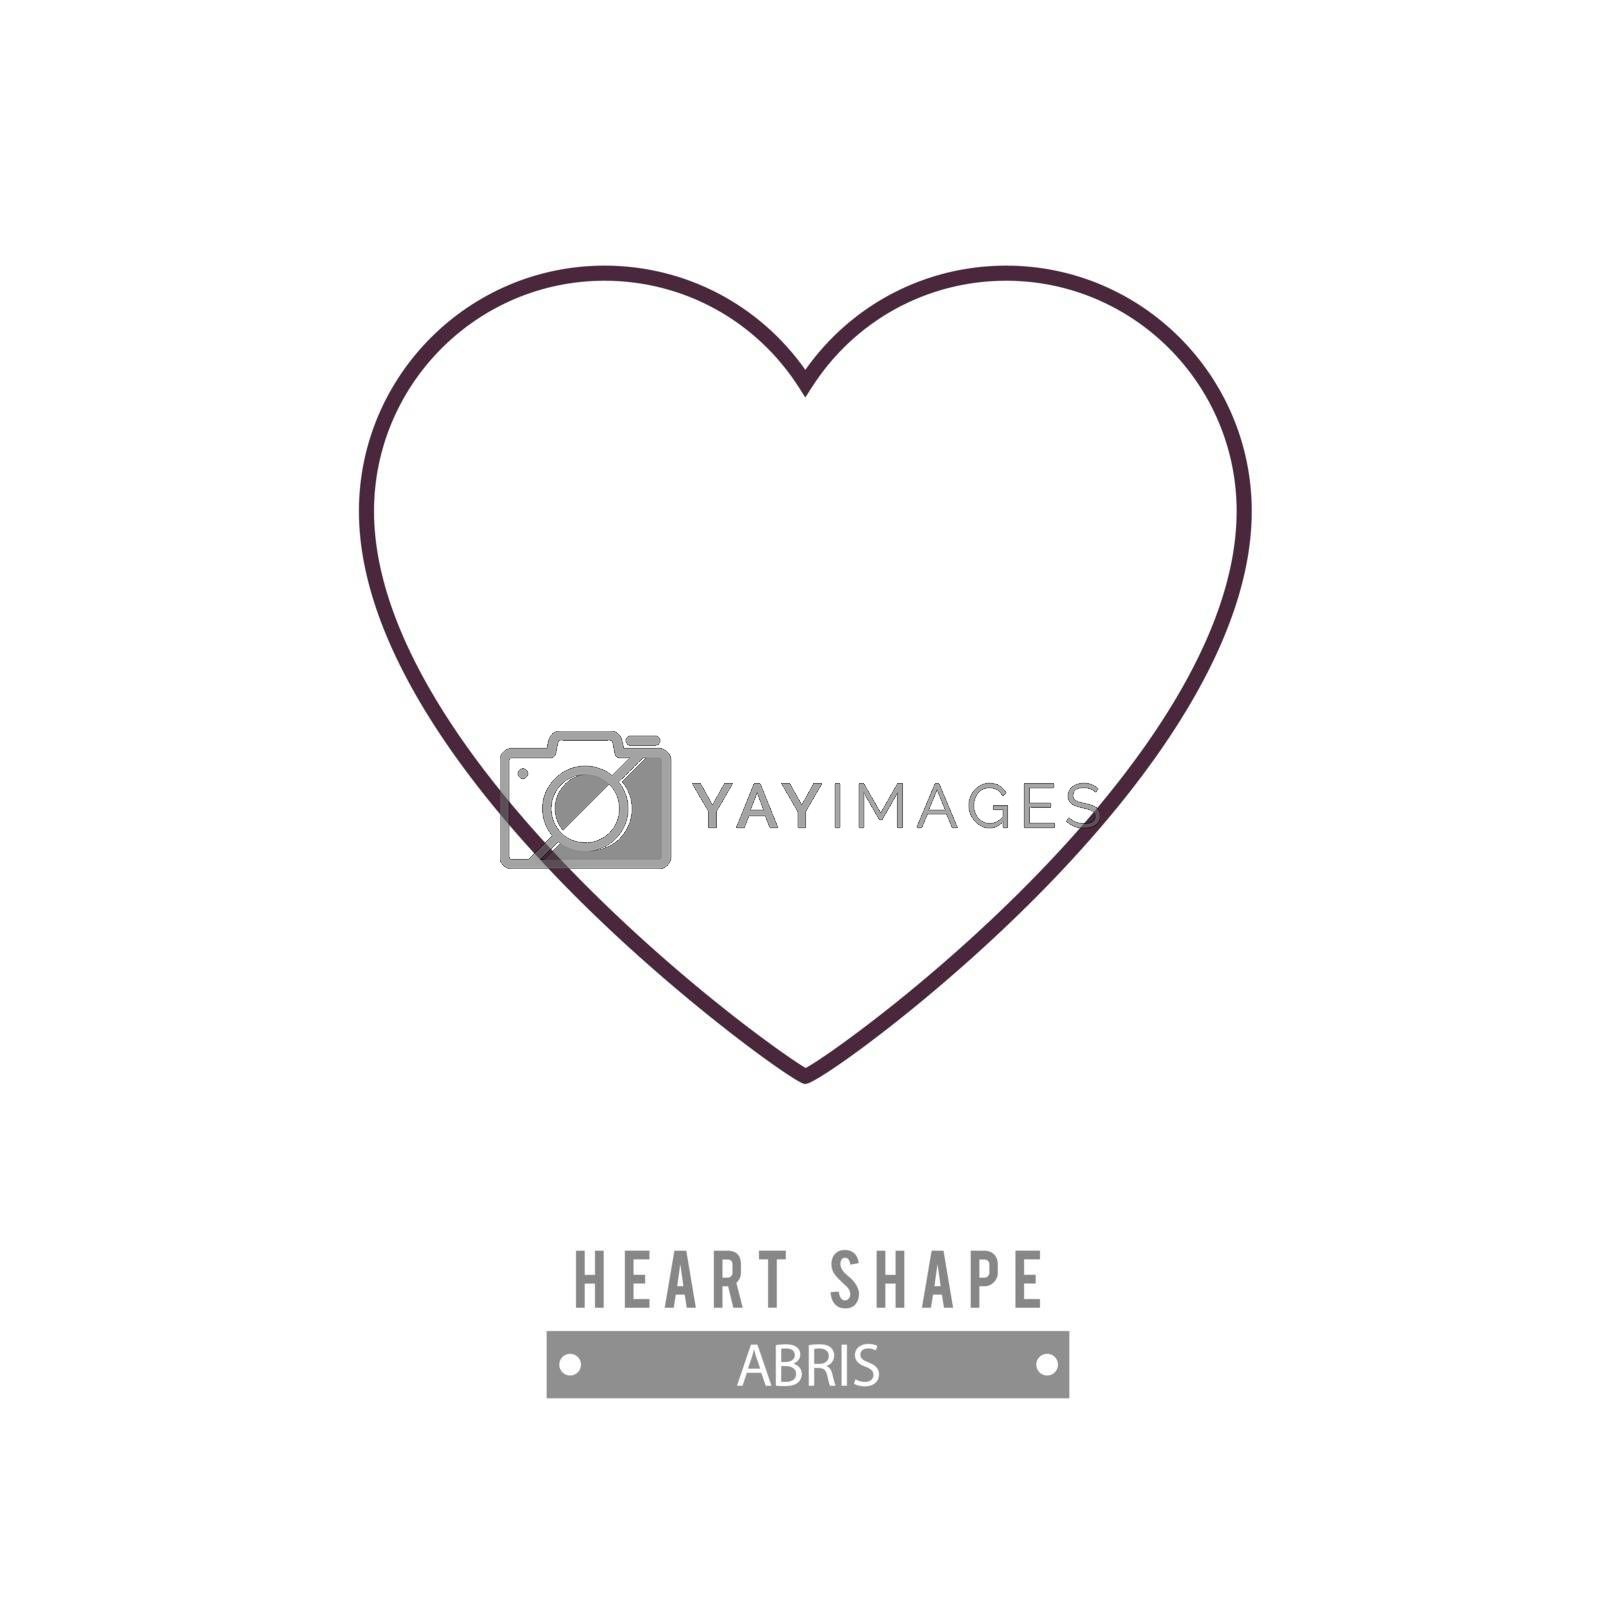 Outline heart icon. Love symbol design element. Vector illustration black and white.